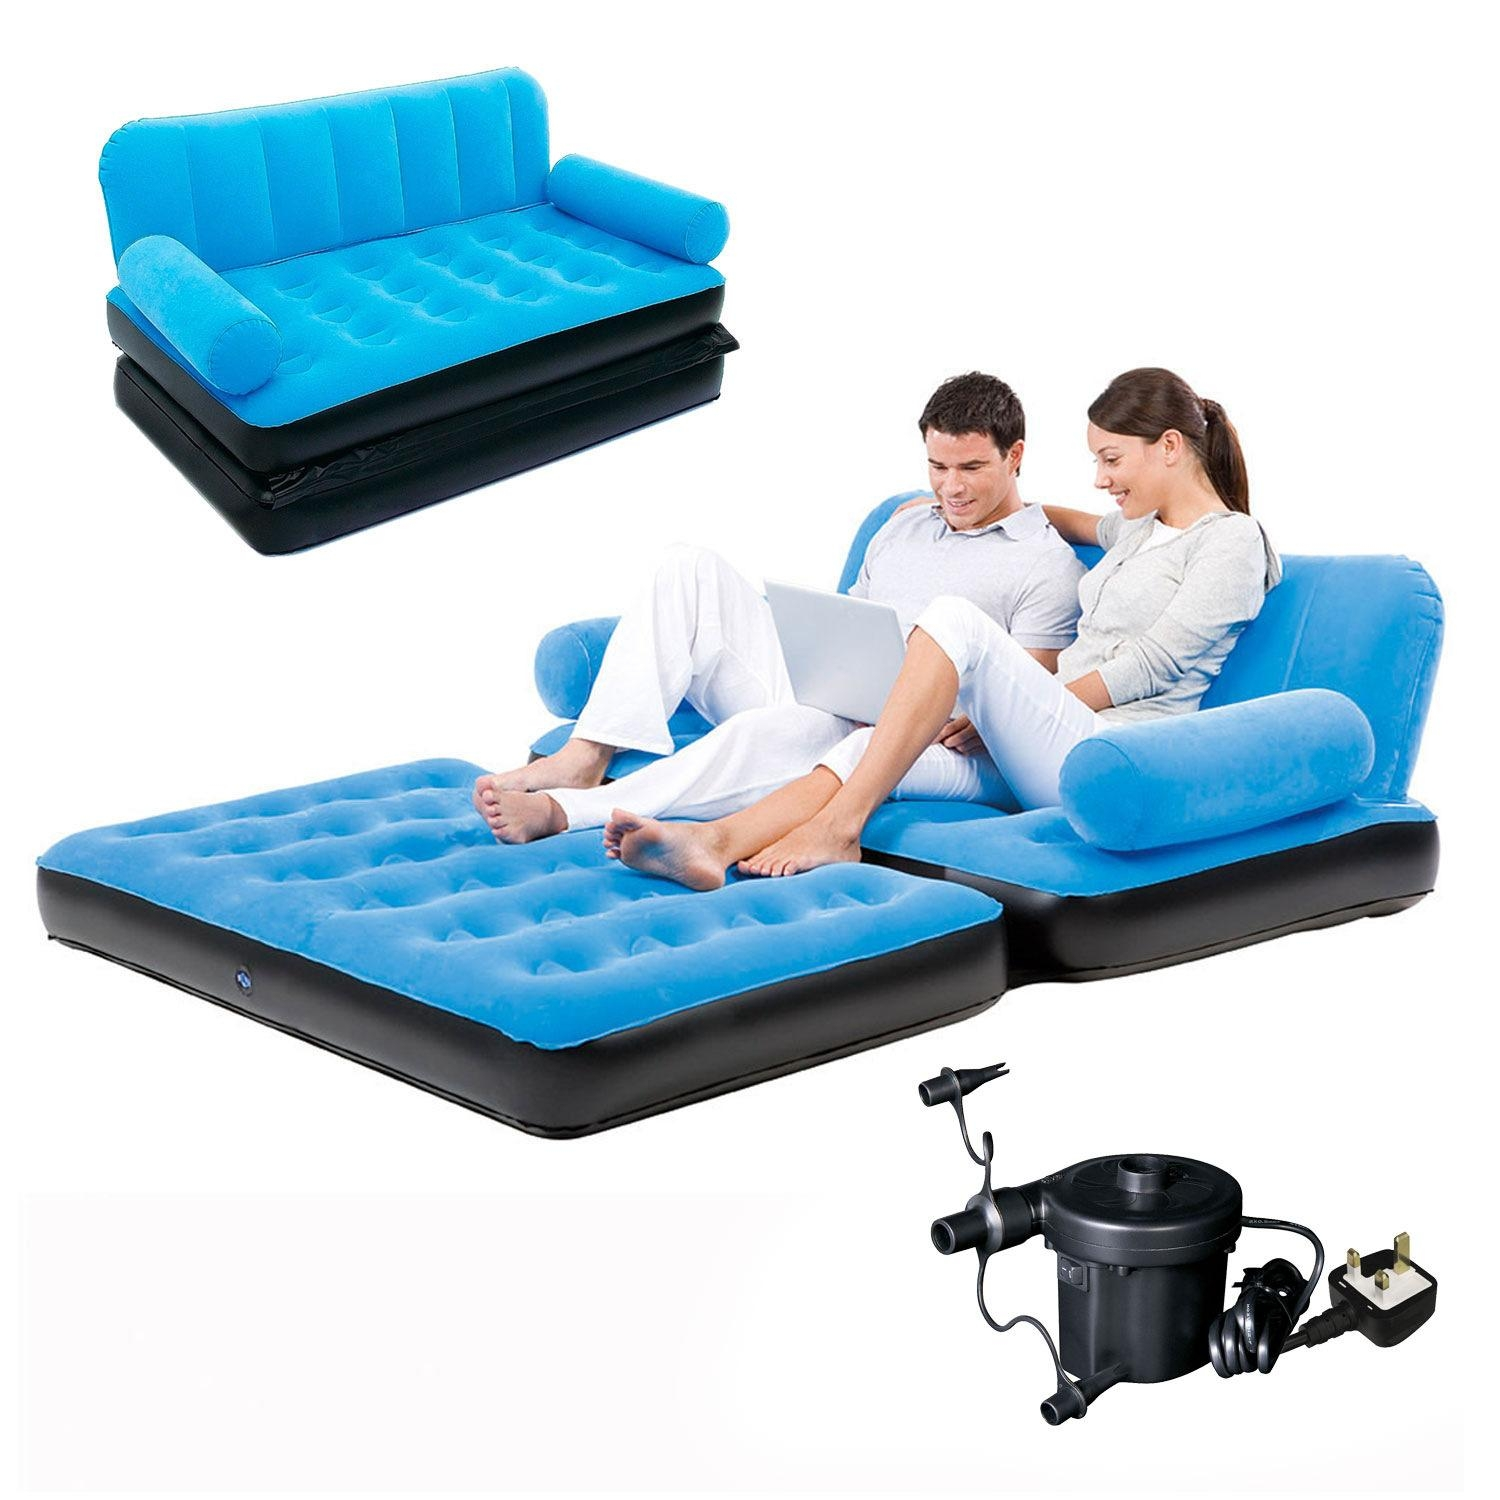 Inflatable Sofa Bed | Roselawnlutheran Throughout Intex Air Sofa Beds (Image 4 of 20)